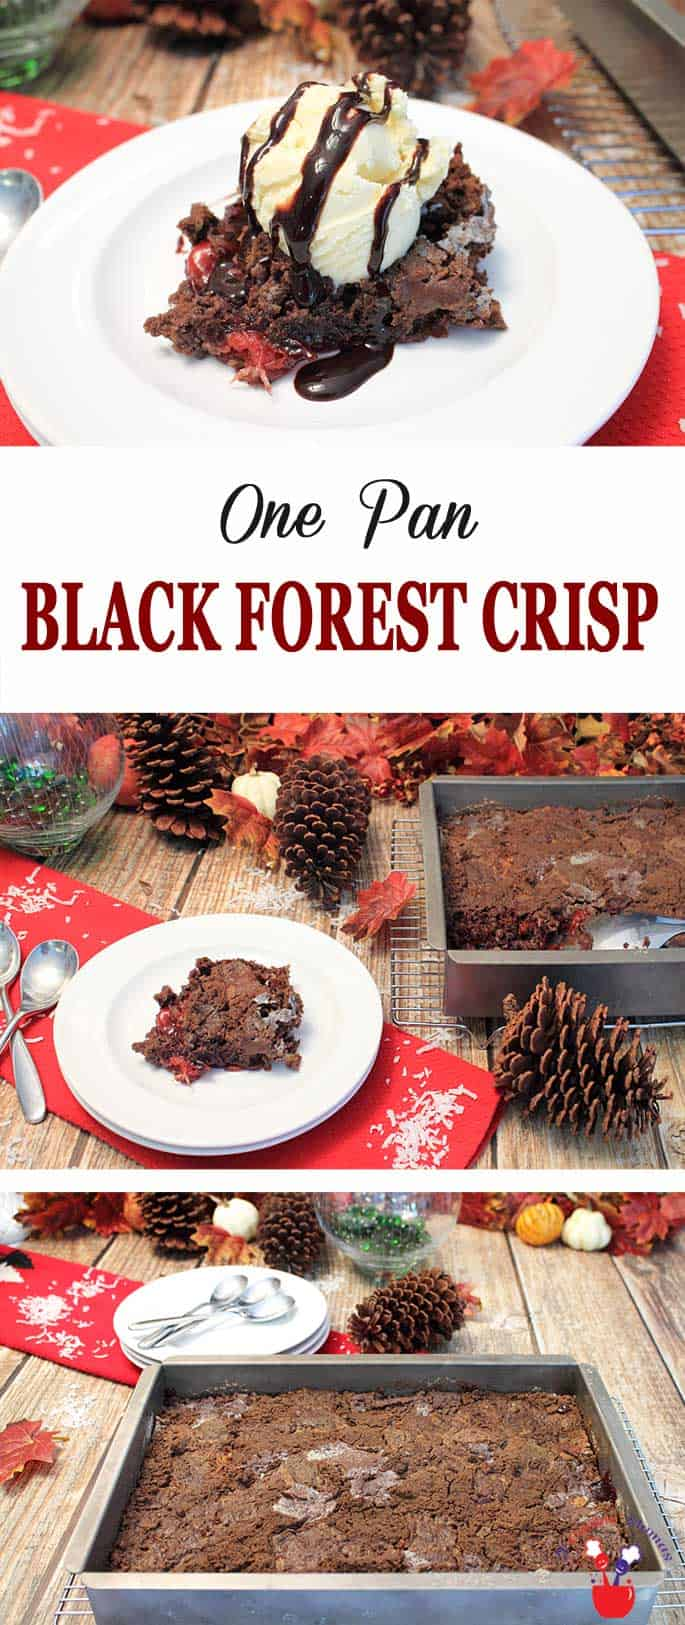 Black Forest Crisp | 2 Cookin Mamas Black Forest Crisp is a quick & easy cake that can be made in minutes. Just 6 ingredients & one pan yield a delicious crispy chocolate cake over a gooey cherry-pineapple-coconut filling. Great for holiday entertaining! #blackforestcake #chocolatecake #dumpcake #dessert #cake #Christmasdessert